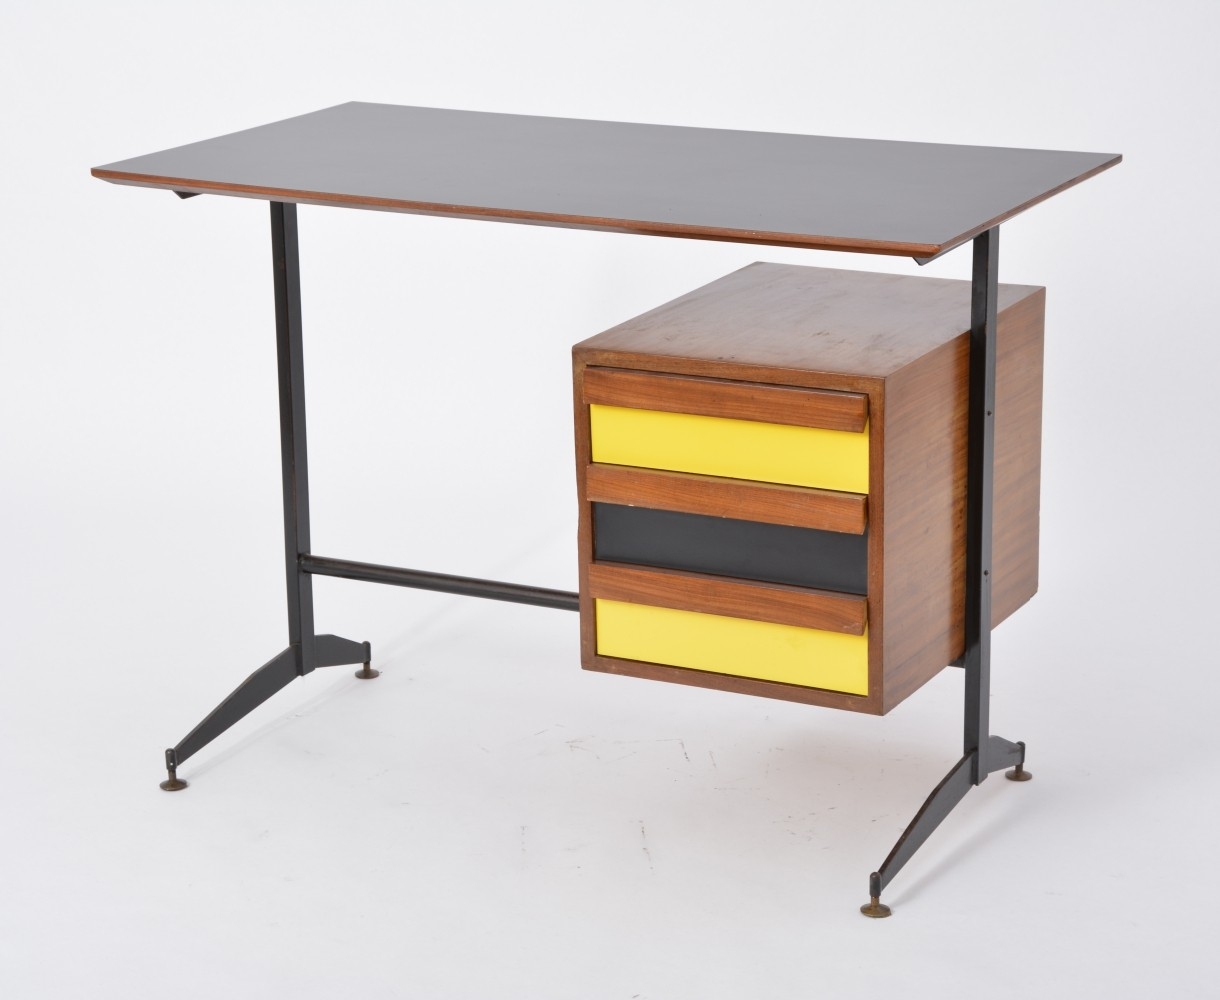 Image of: Small Italian Mid Century Desk With Black Yellow Drawers 88672